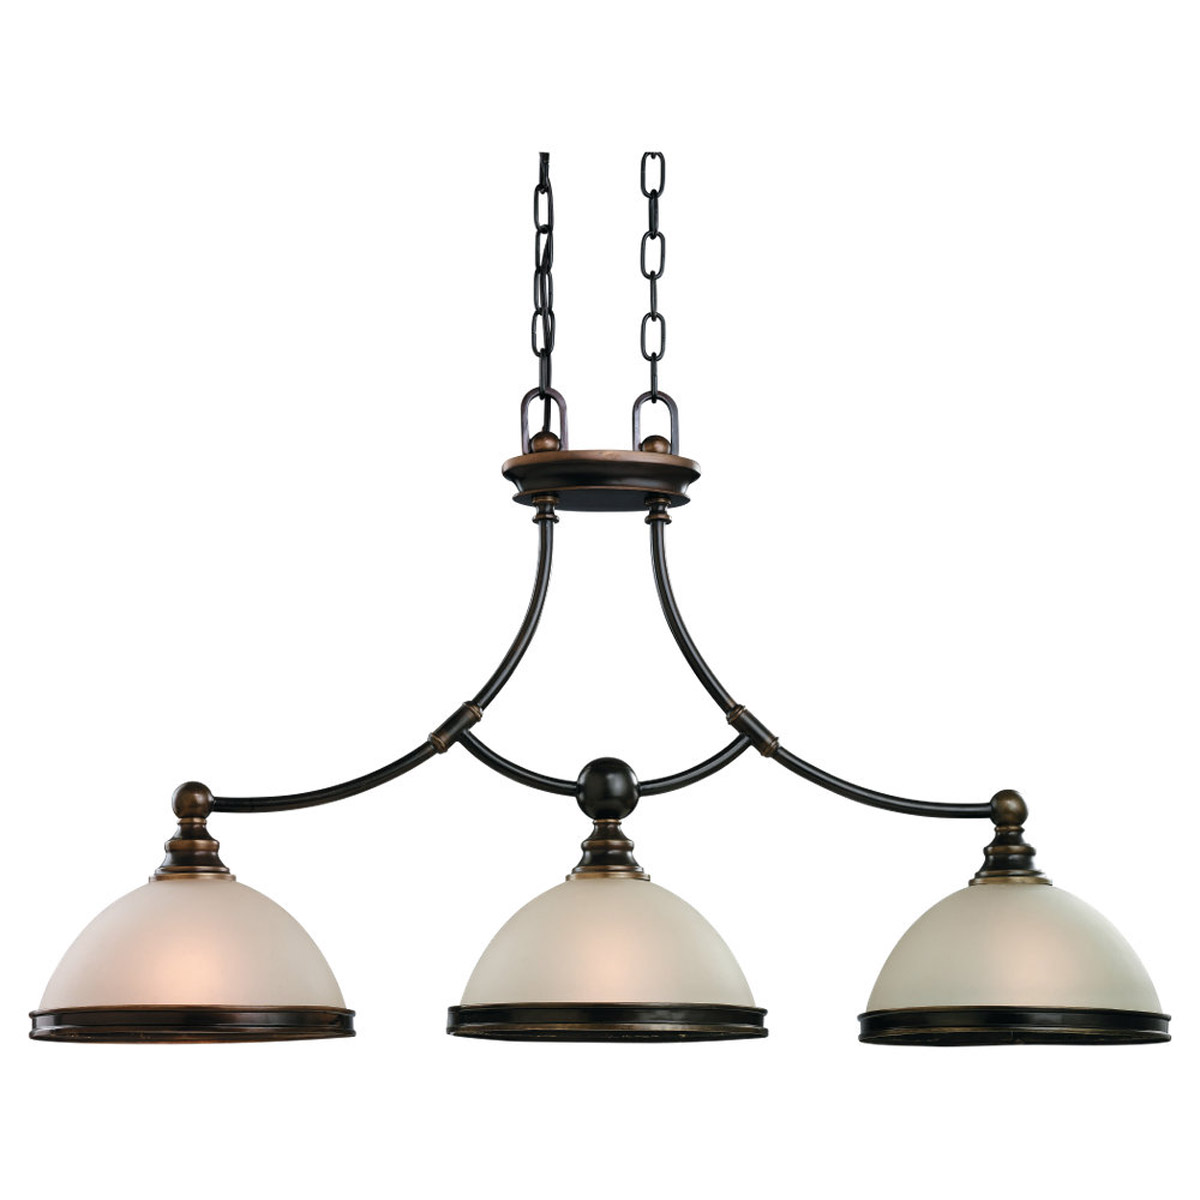 Sea Gull Lighting Warwick 3 Light Billiard Pendant in Vintage Bronze 66330-825